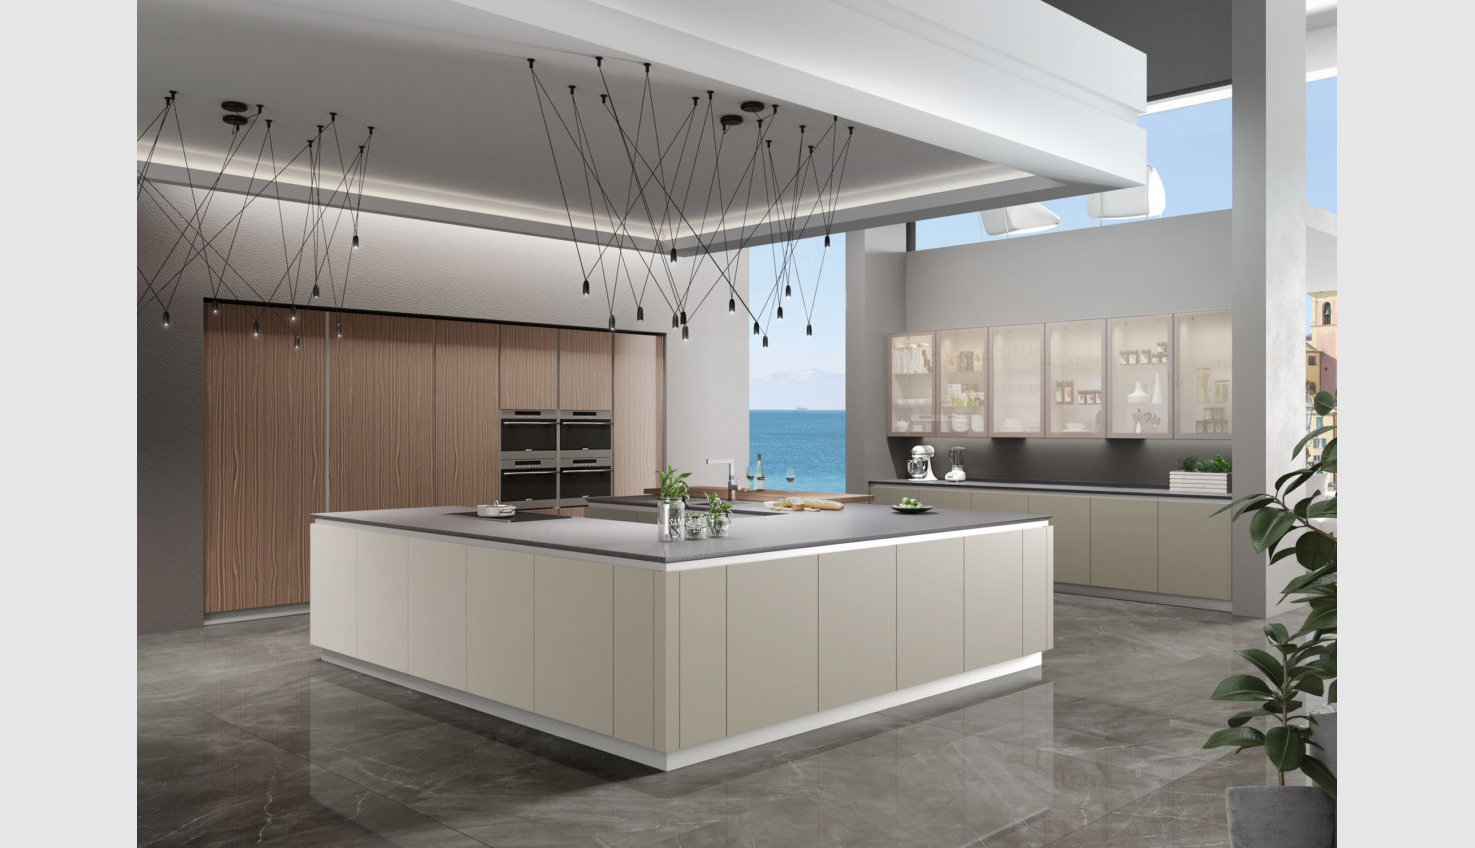 Studio Verticale Italian Kitchen Cabinets In Stock Ready To Deliver